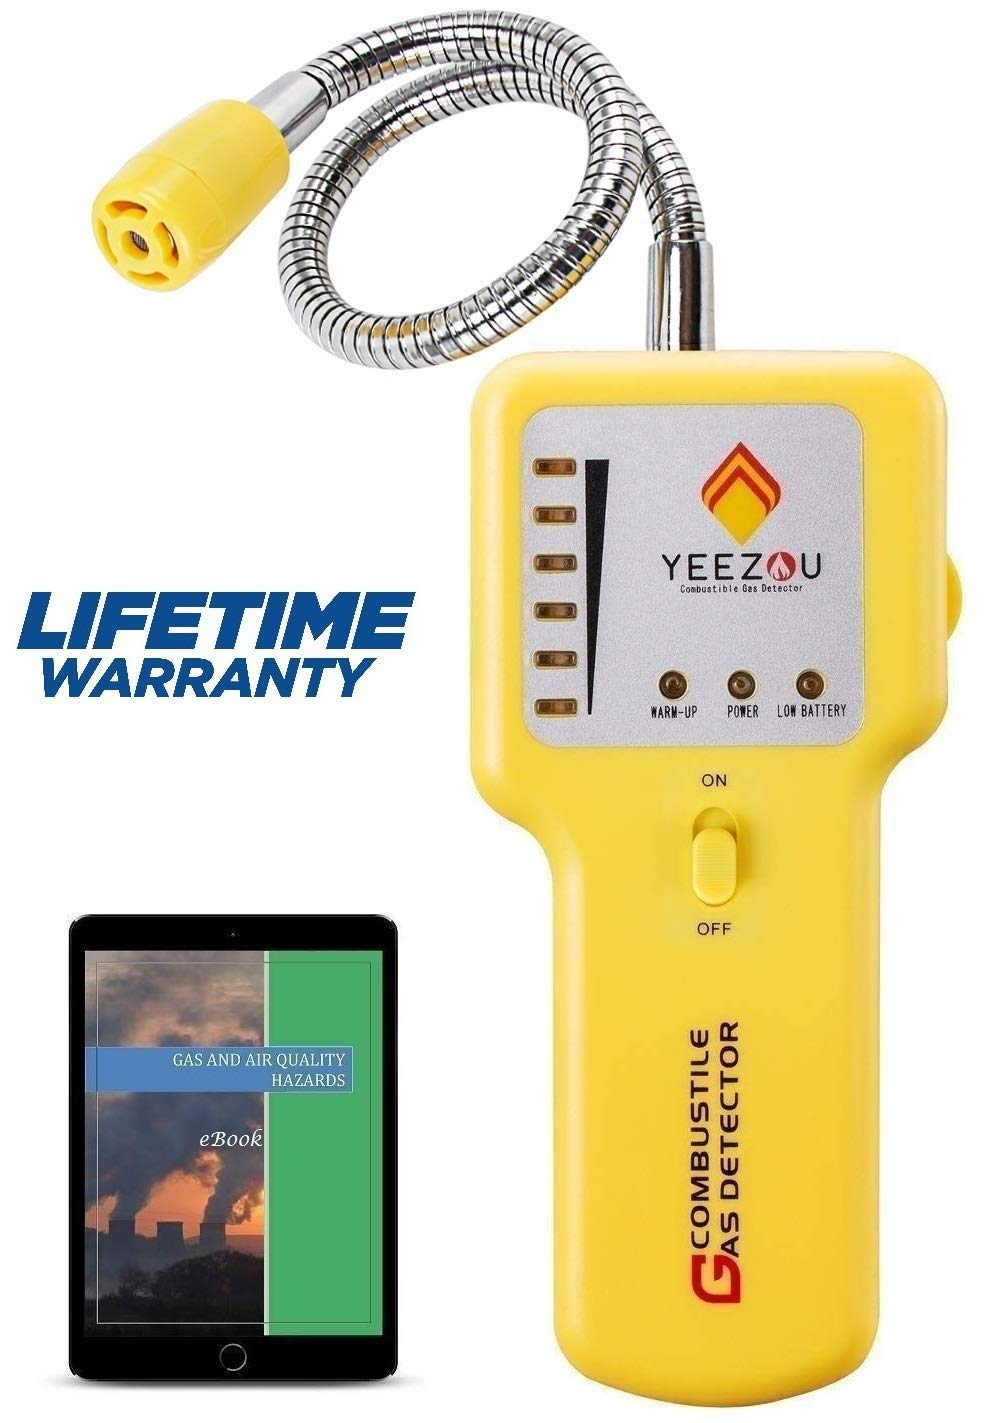 Y201 Propane and Natural Gas Leak Detector; Portable Gas Sniffer to Locate Gas Leaks of Combustible Gases like Methane, LPG, LNG, Fuel, Sewer Gas; w/ Flexible Sensor Neck, Sound & LED Alarm, eBook by EG Air